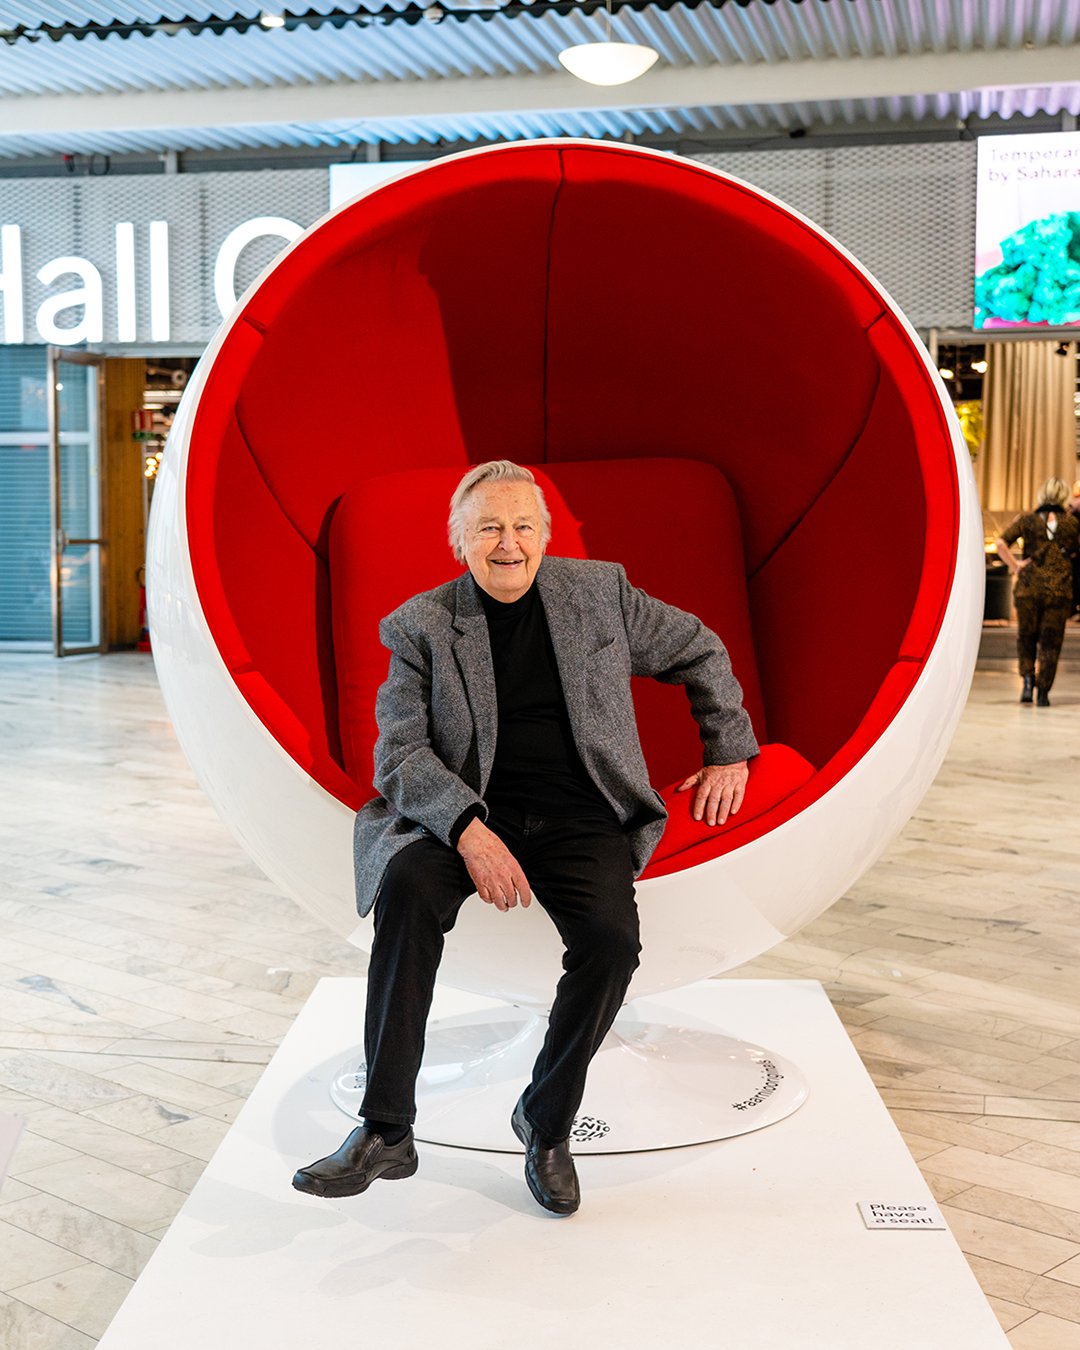 The Giant Ball Chair